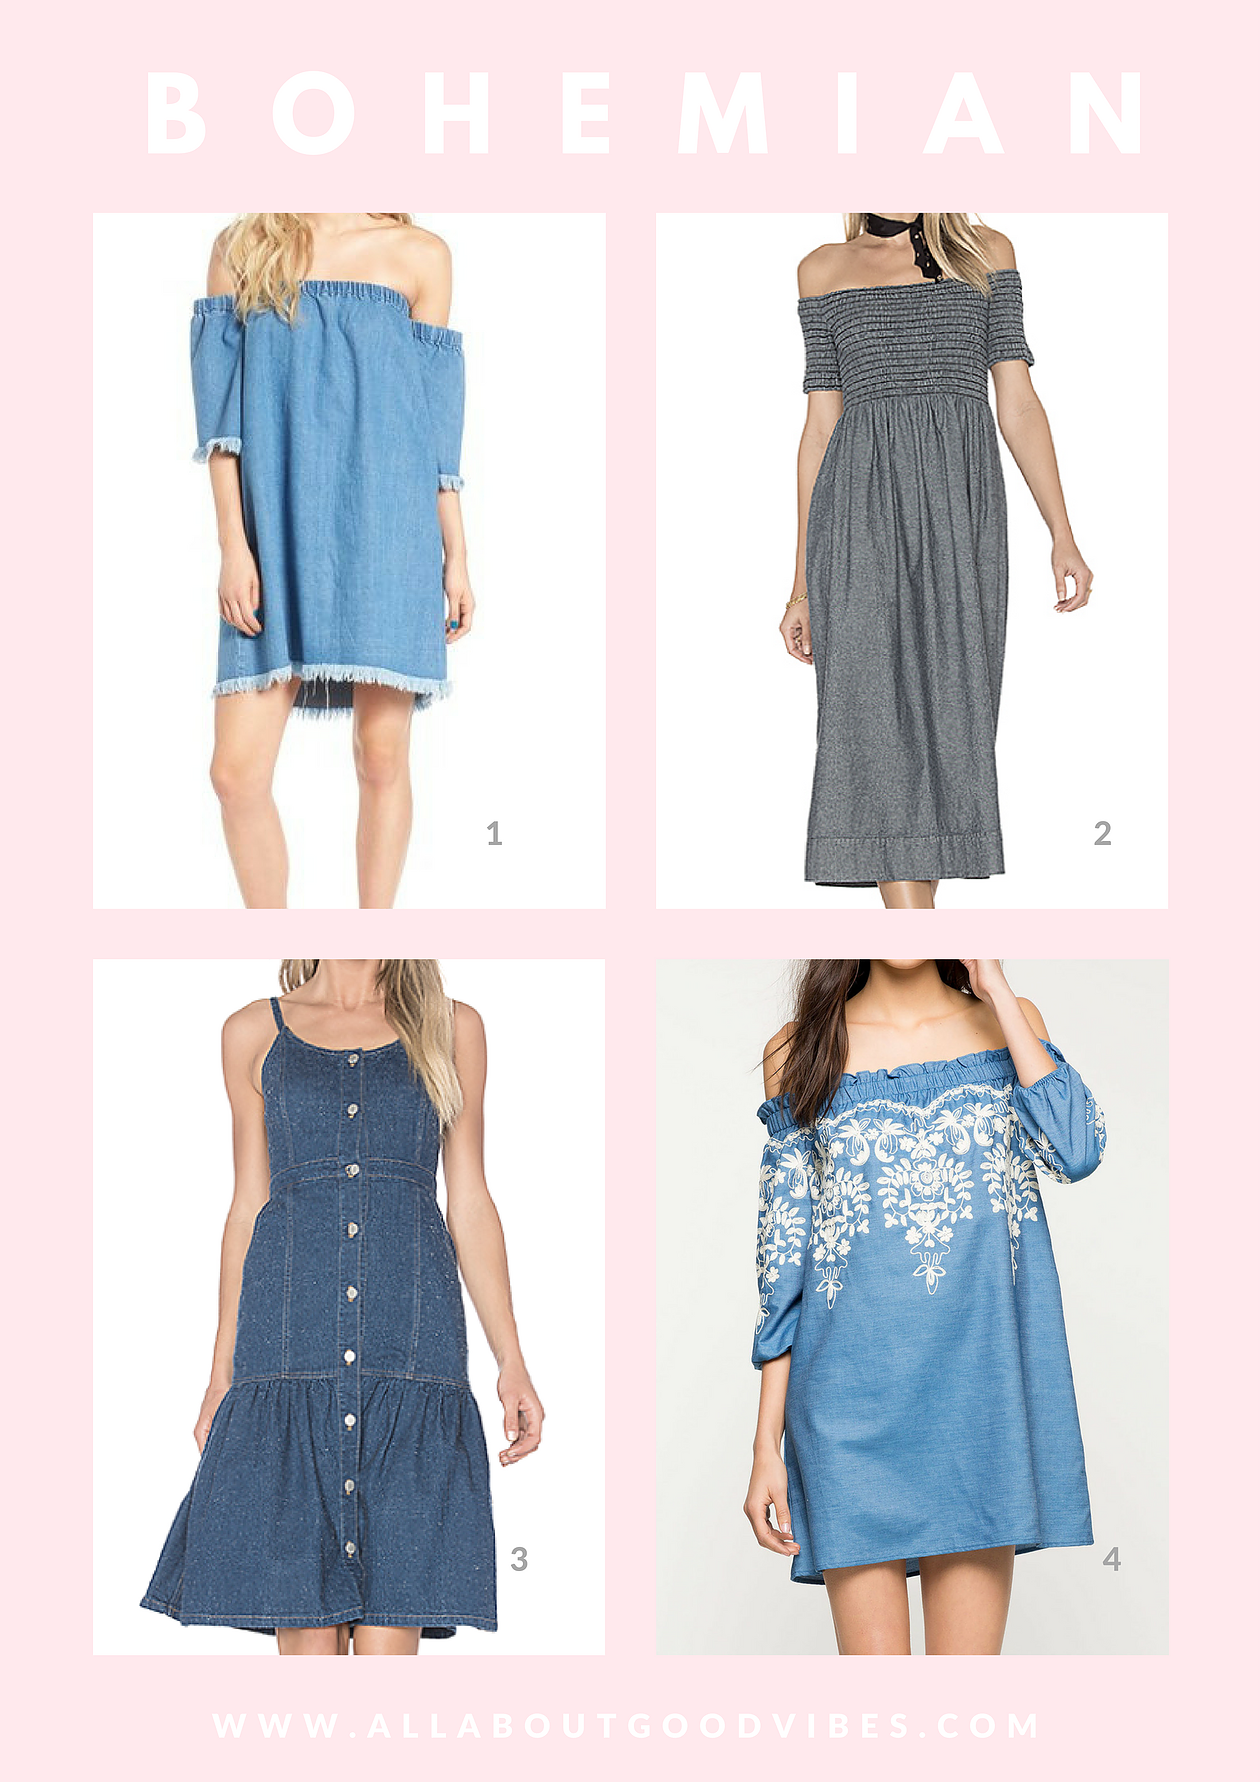 Denim Dress For Your Fashion Personality Type All About Good Vibes